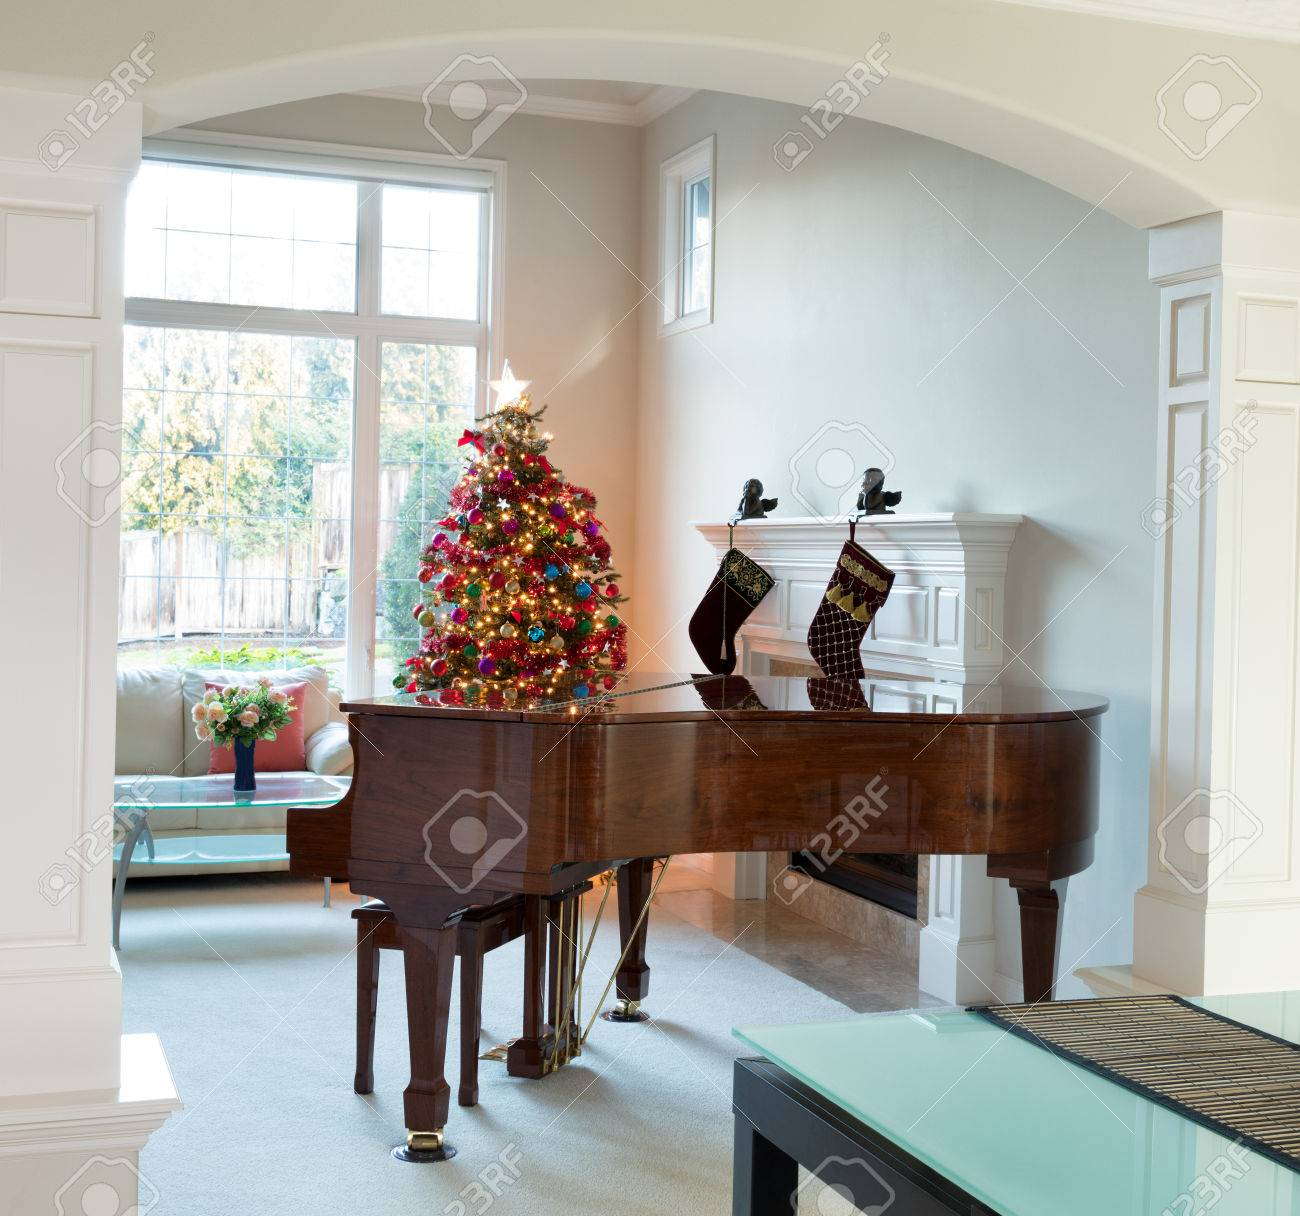 Living Room Entrance With Grand Piano Decorated Christmas Tree And Large Daylight Window In Background